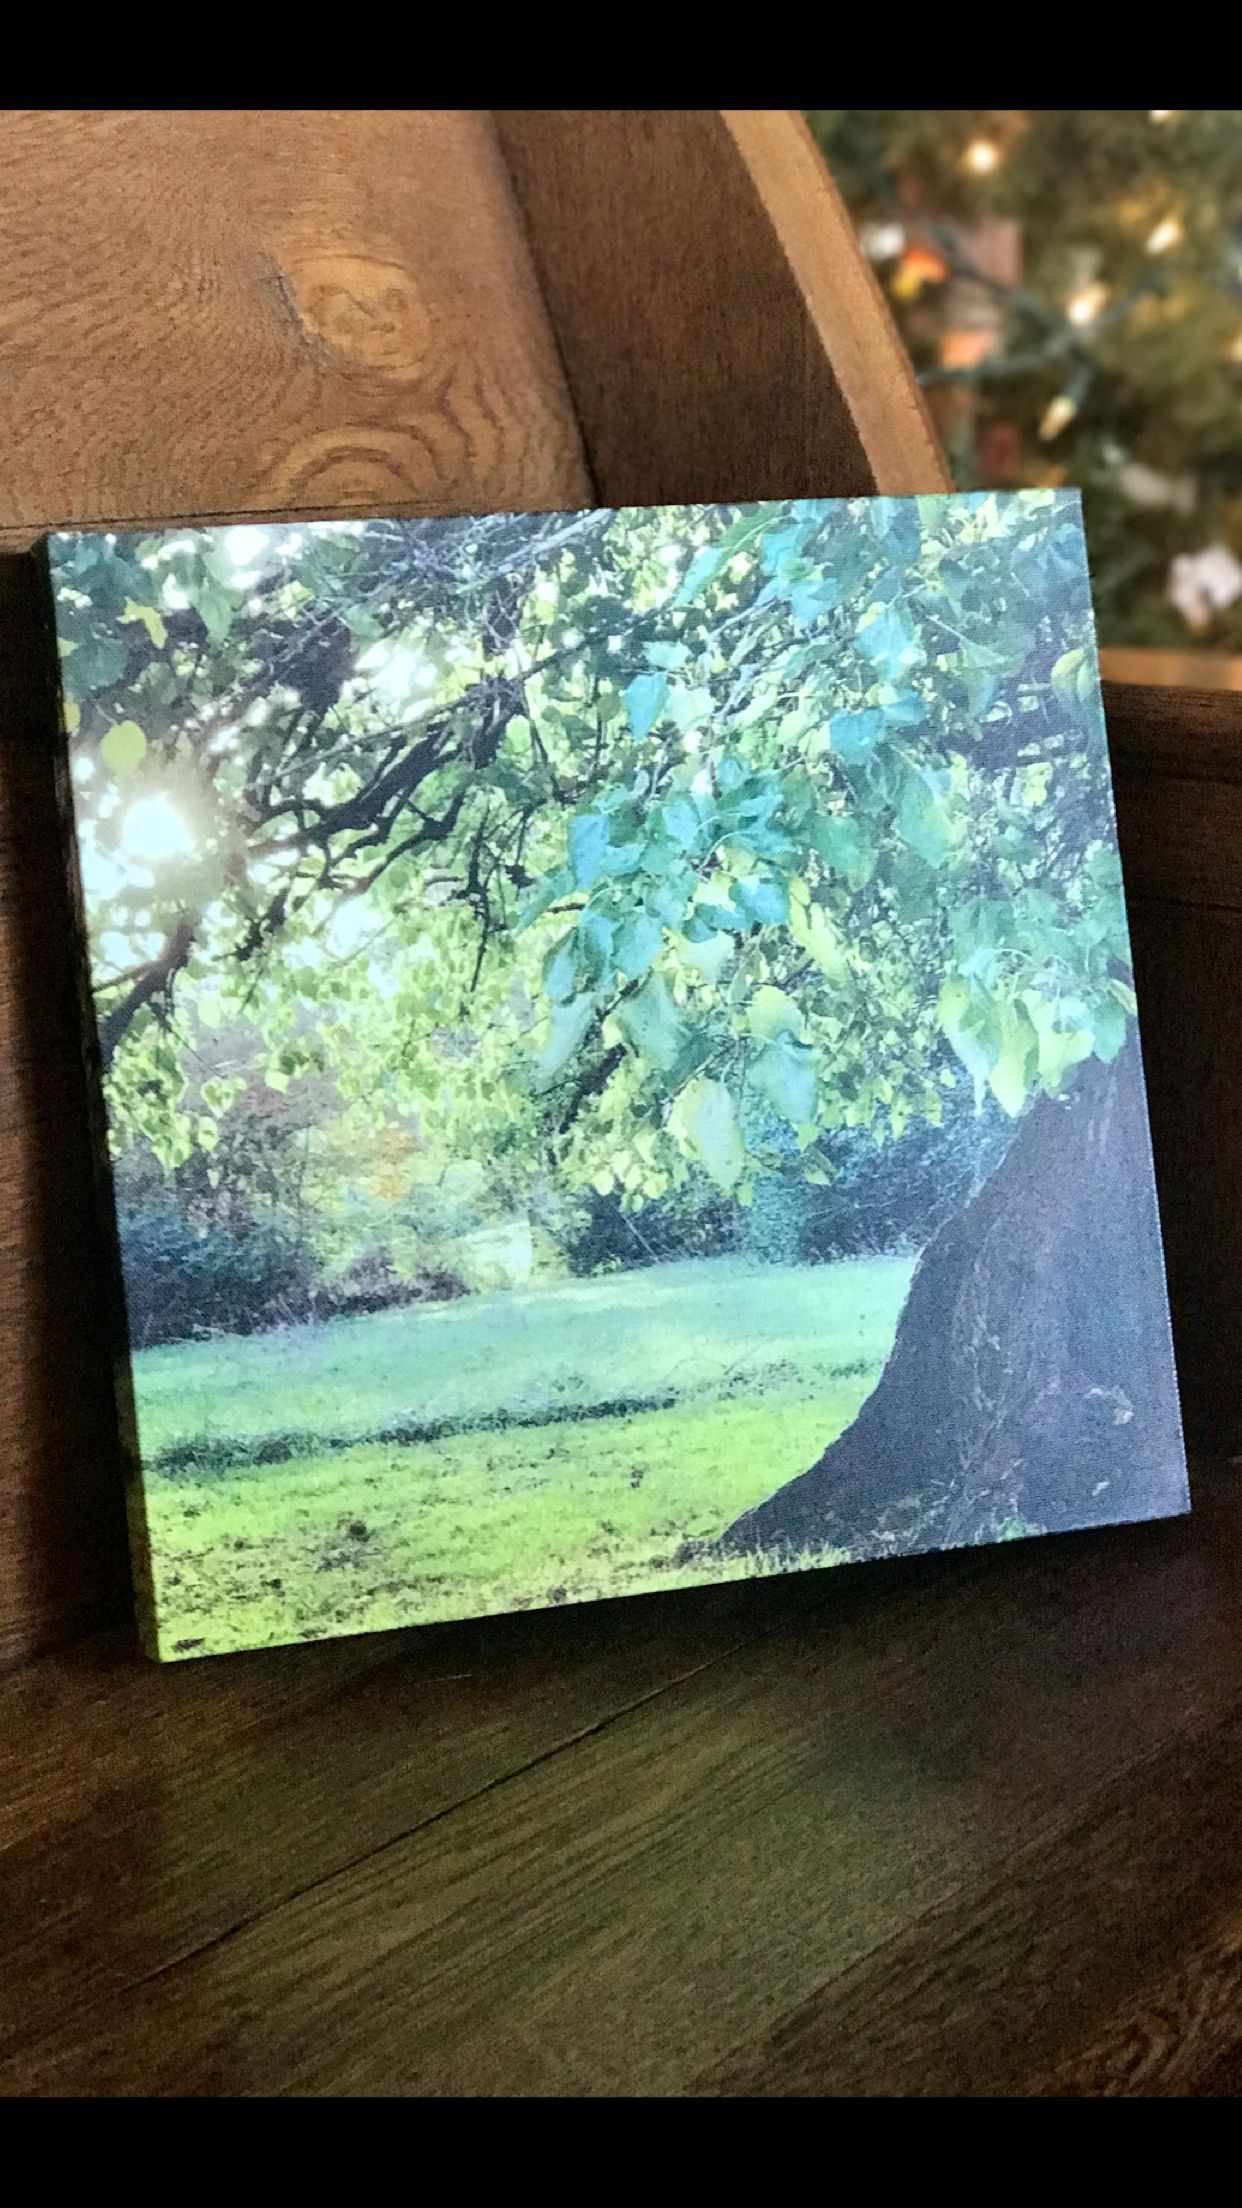 Mulberry Tree In Summer, Farm Photography, Farmhouse Decor, Large Wall Art,  Fine